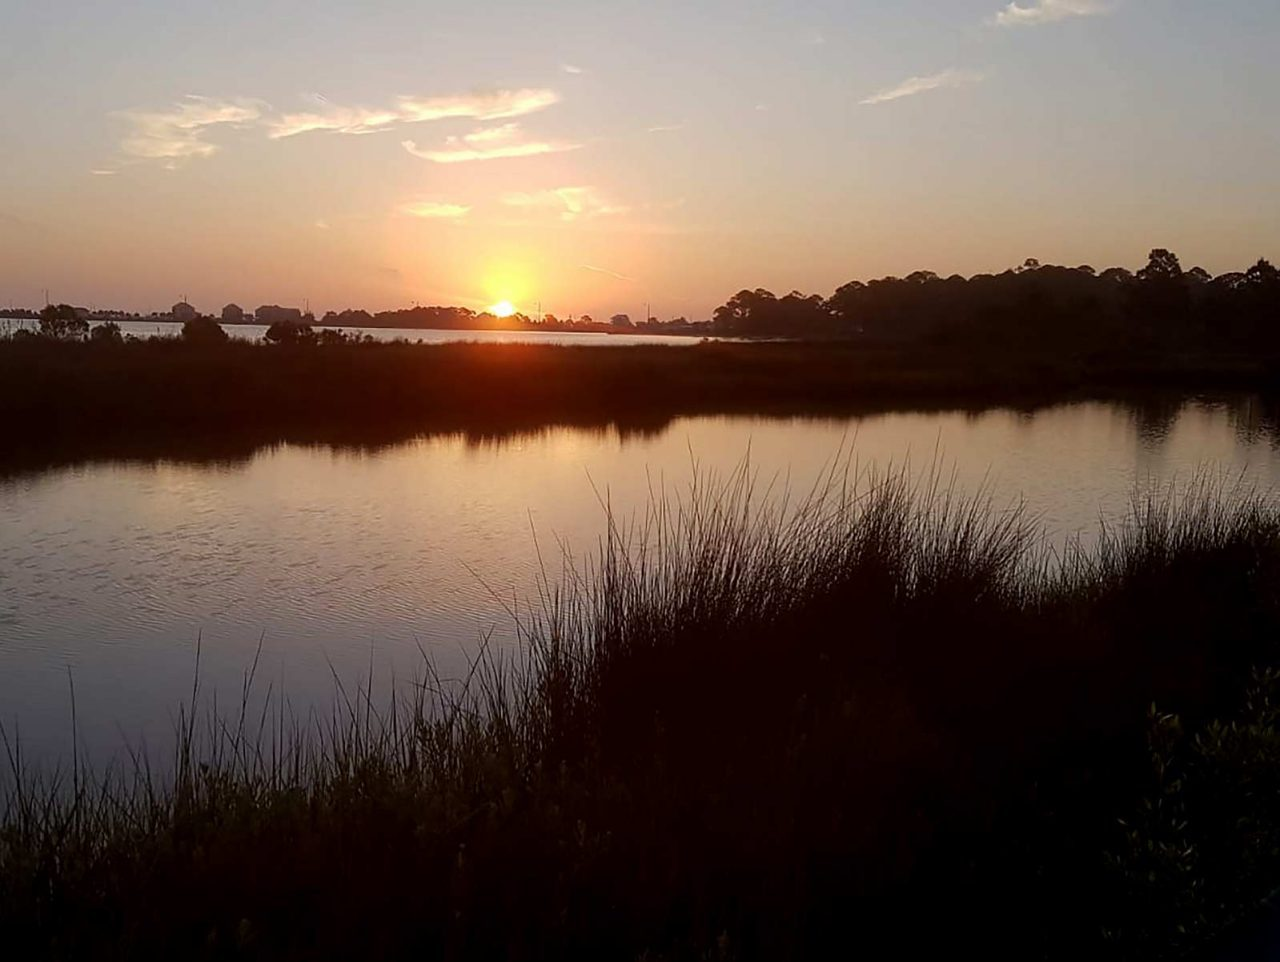 Clapper Rails clap and Seaside Sparrows trill as the sun rises over a gorgeous Alabama saltmarsh.